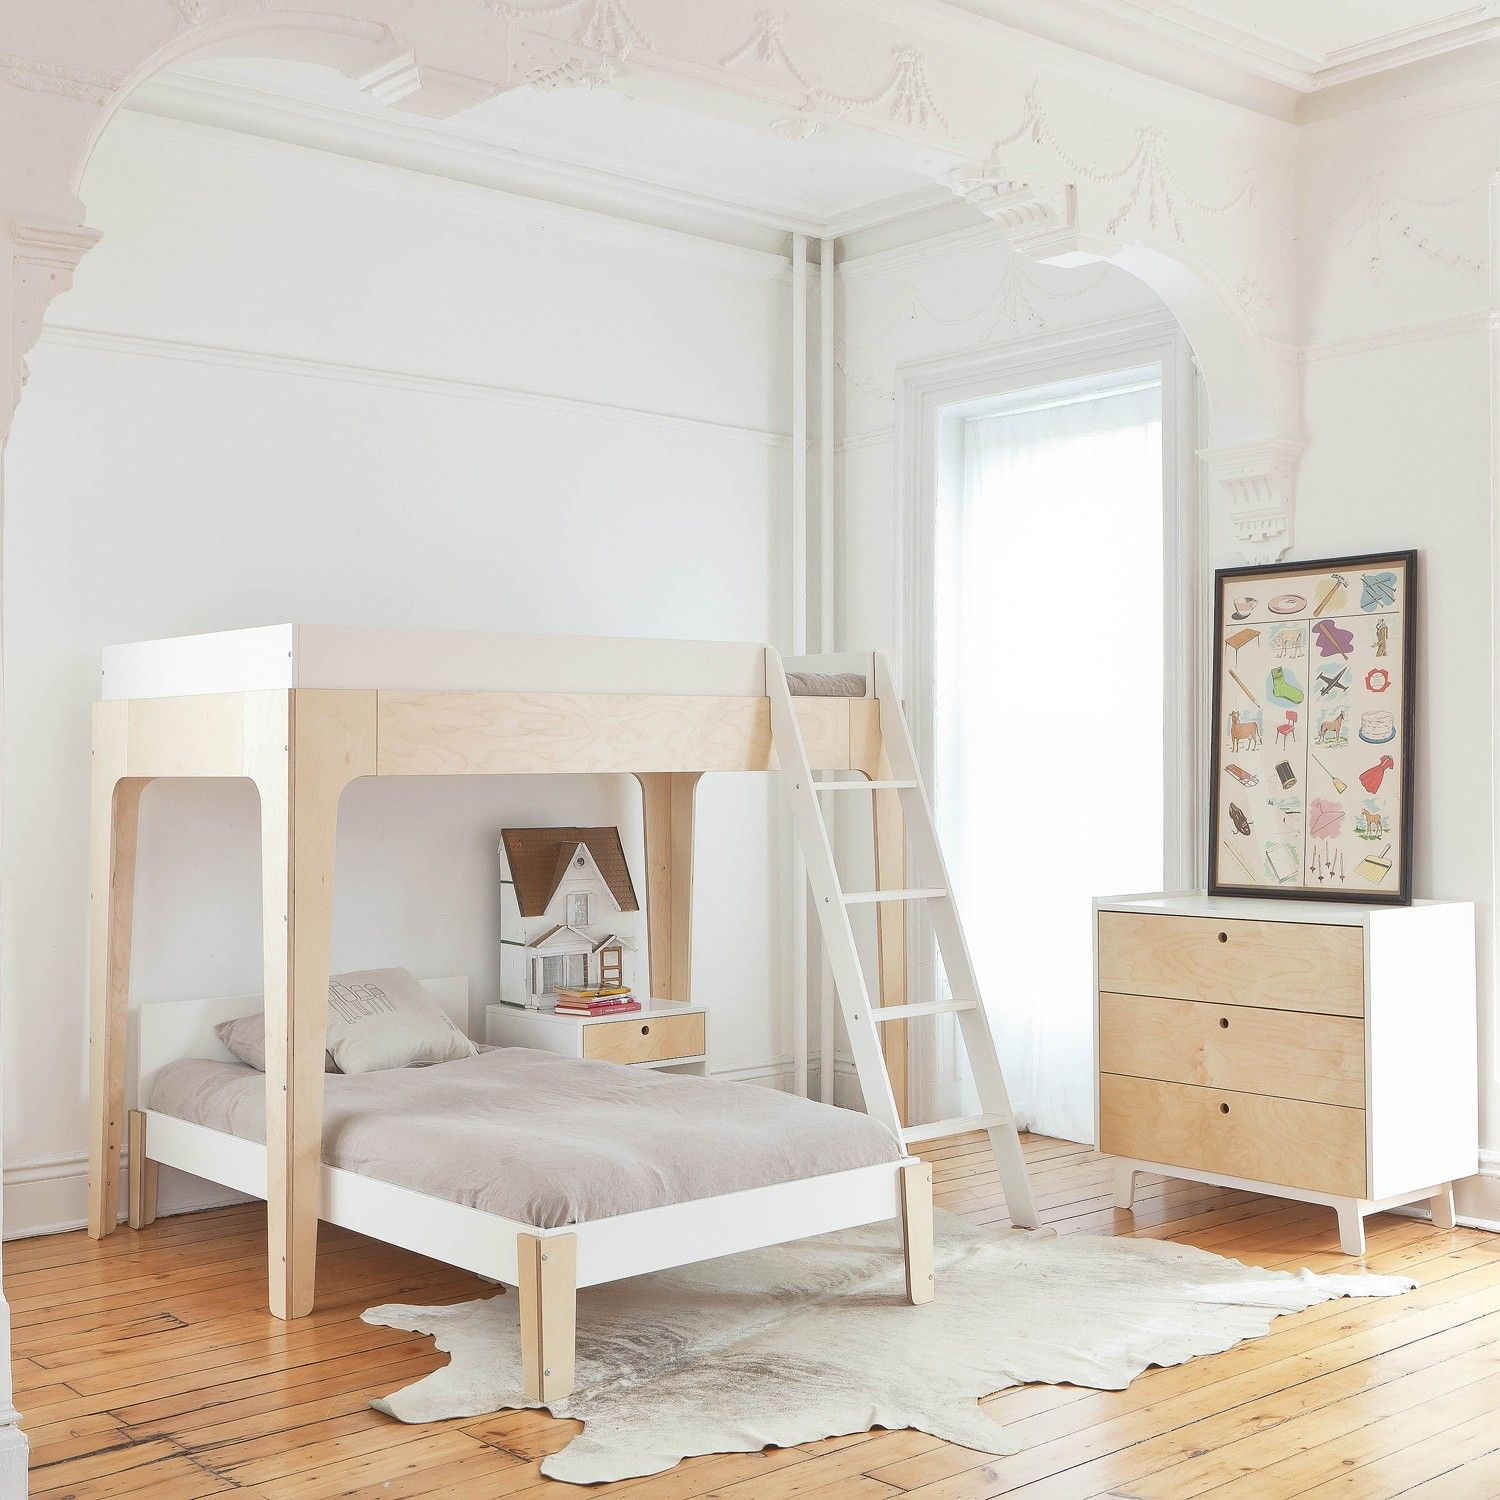 Bunk bed loft ideas  Decorating Ideas for a Modern Guest Room  Bunk bed Lofts and Twins